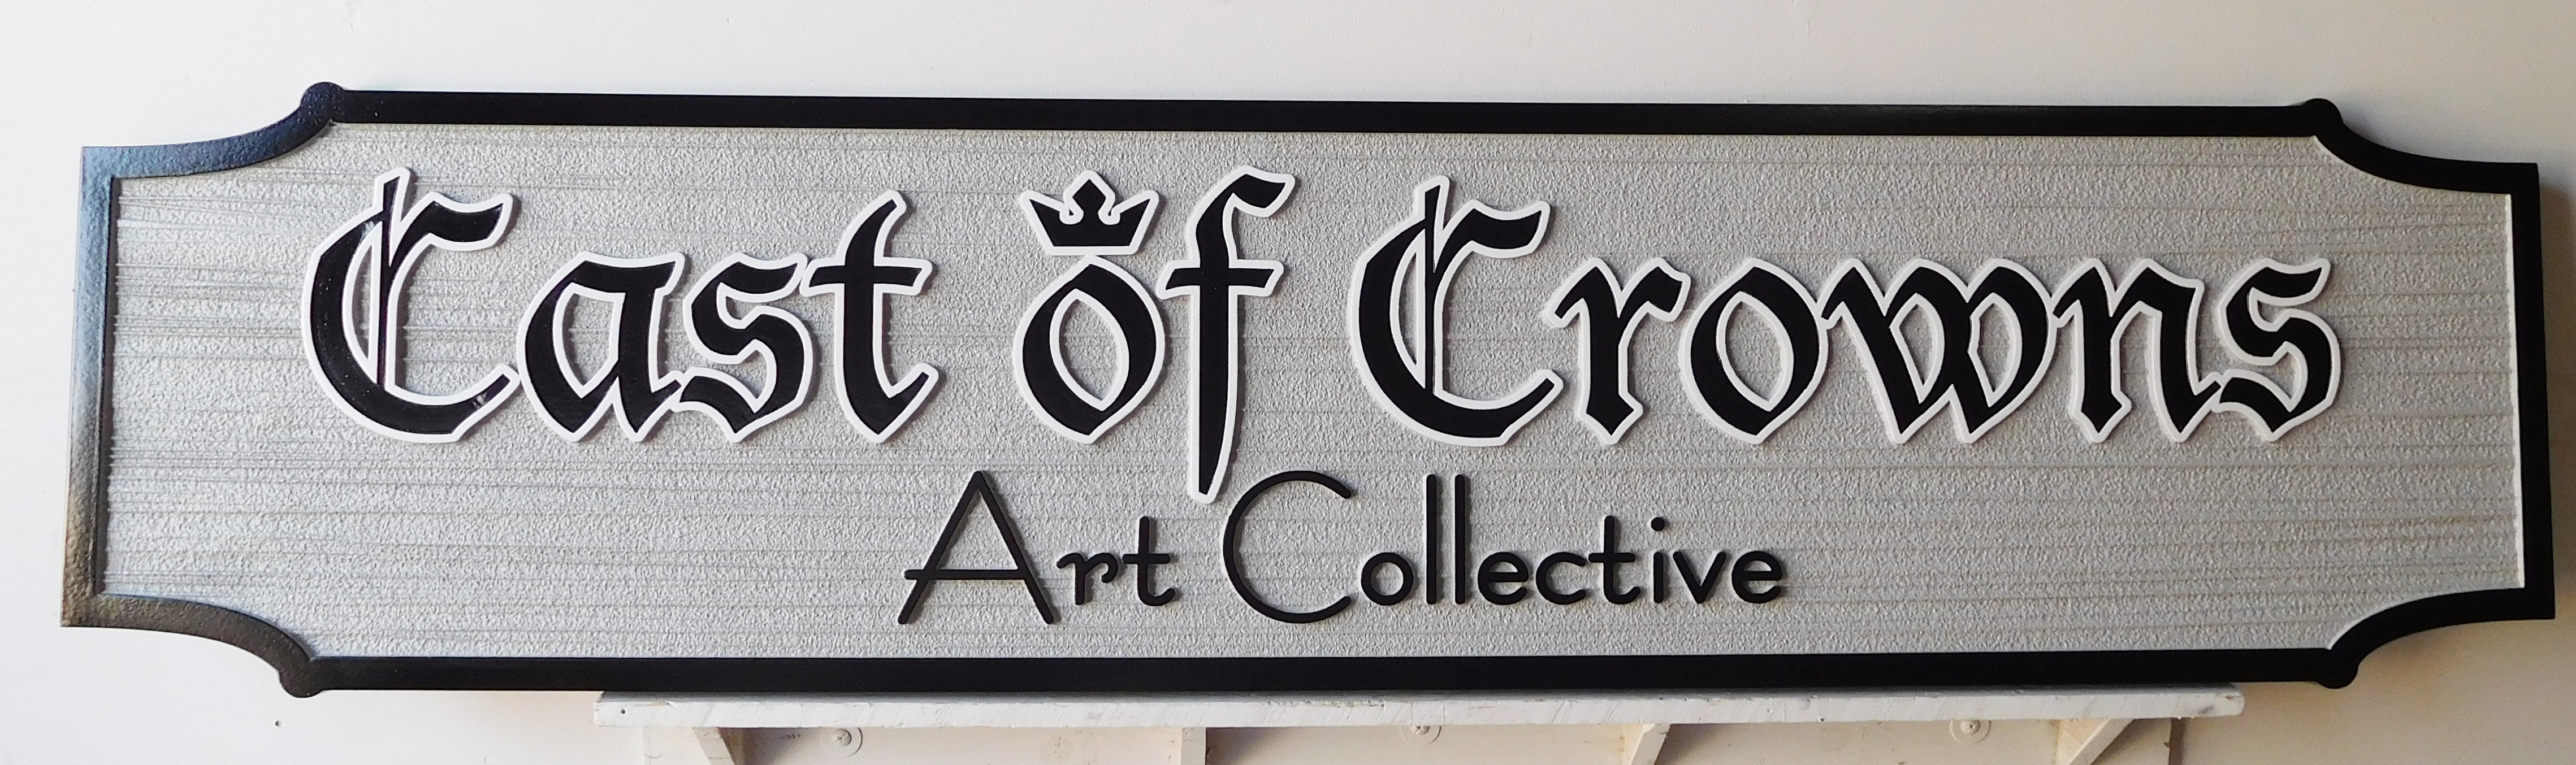 "SA28424 -  Carved and Sandblasted HDU Sign for the ""Cast of Crowns Art Collective"""